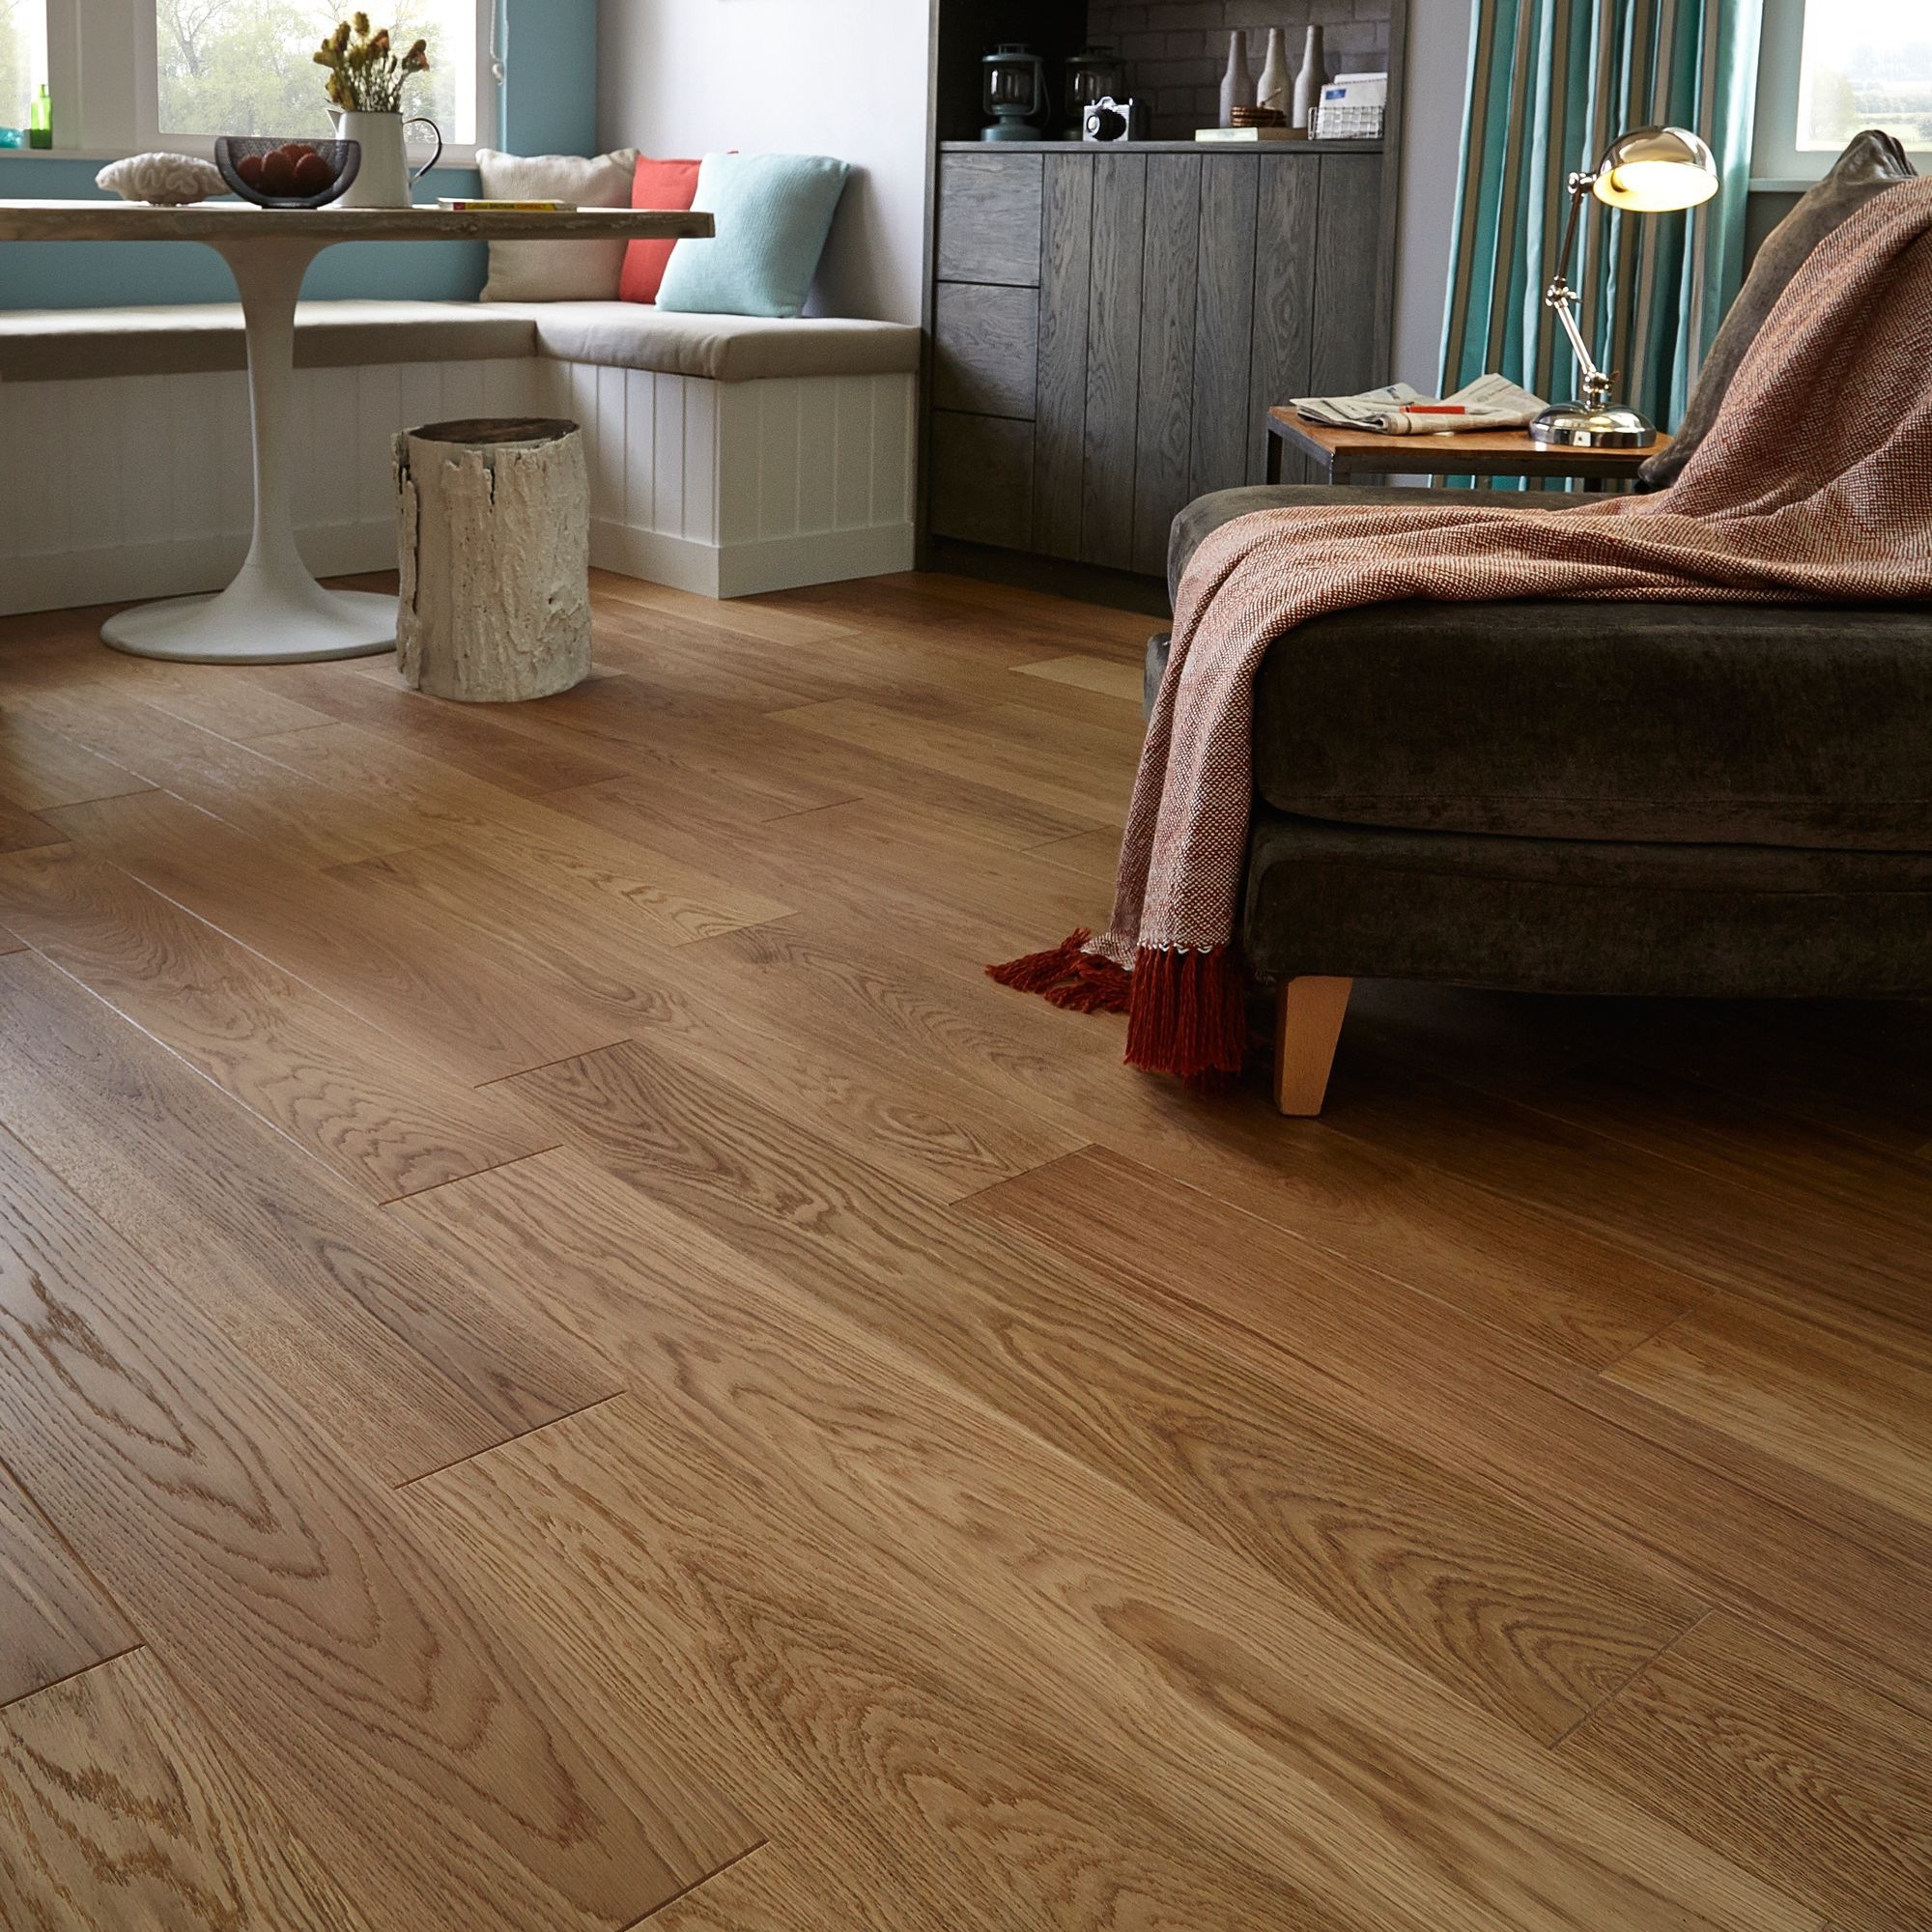 Quick-Step Cadenza Natural Oak Effect Wood Top Layer Flooring 1 m Pack |  Departments | DIY at B&Q